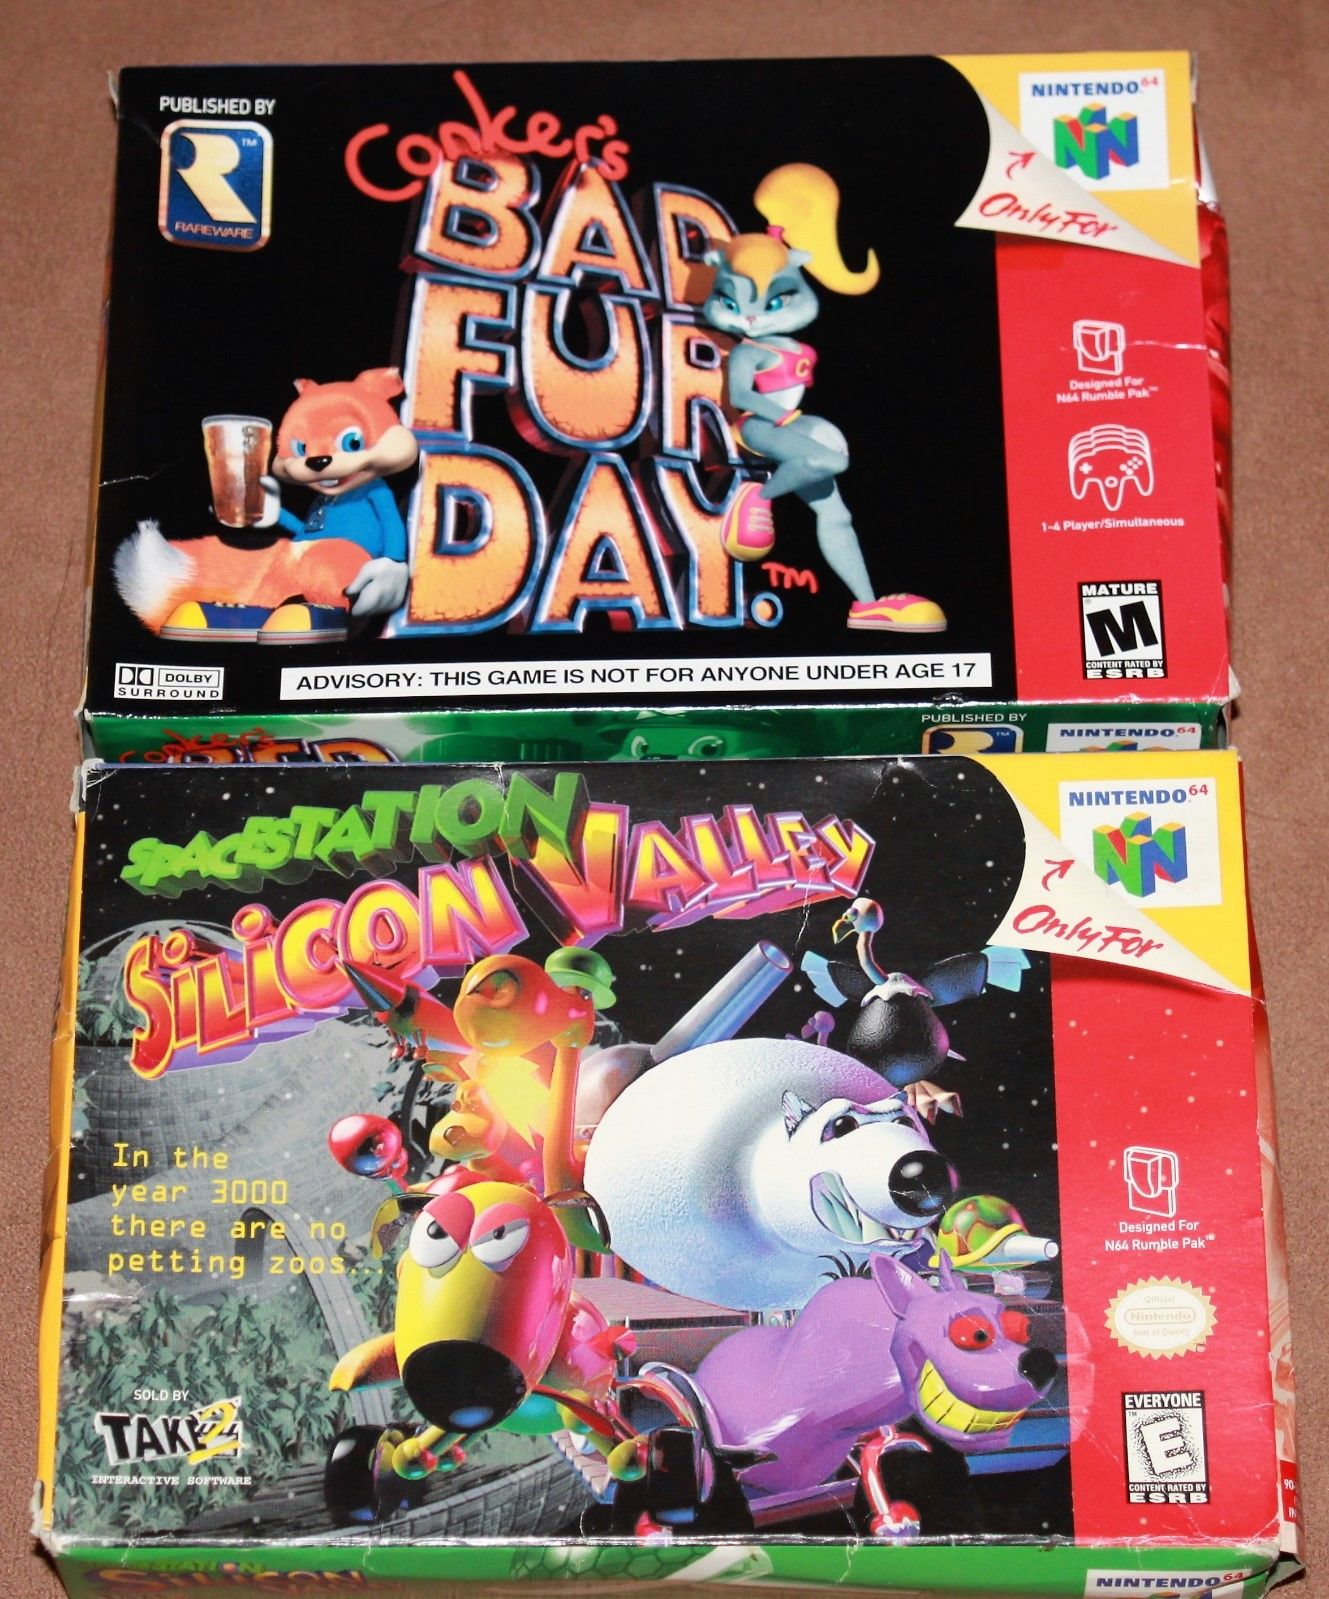 Original Game Cases & Boxes